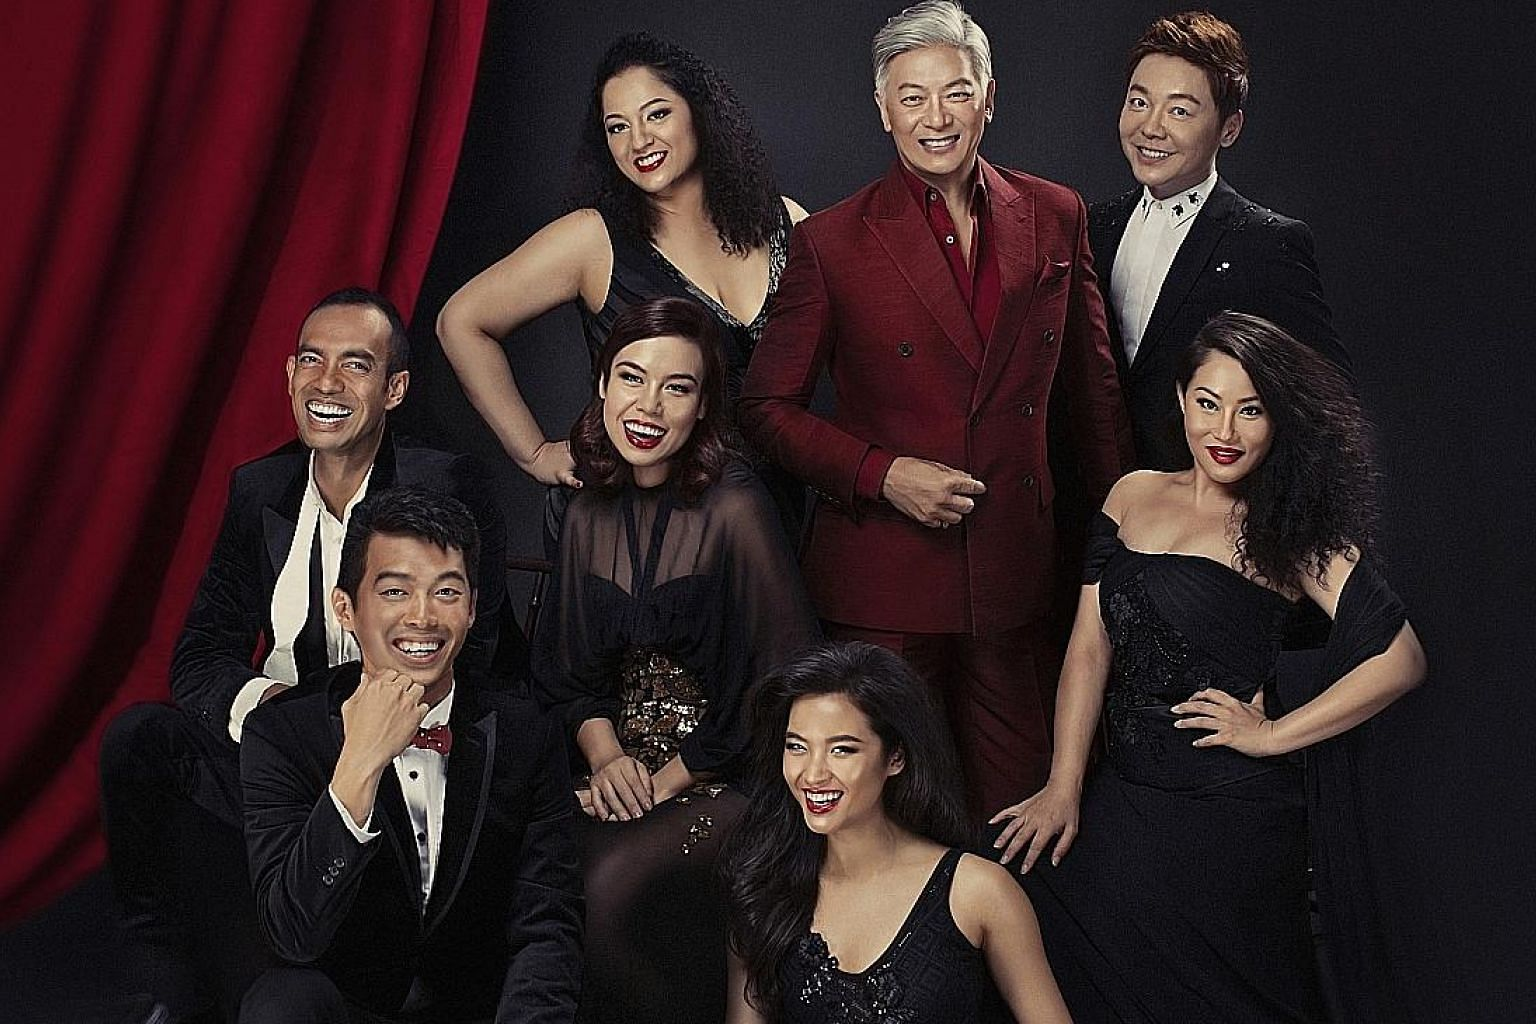 Dick Lee (centre, in red suit) with (clockwise from his left) Sebastian Tan, Denise Tan, Cheryl Tan, Frances Lee, Benjamin Chow, Dwayne Lau and Alemay Fernandez will be performing in Singapopera.